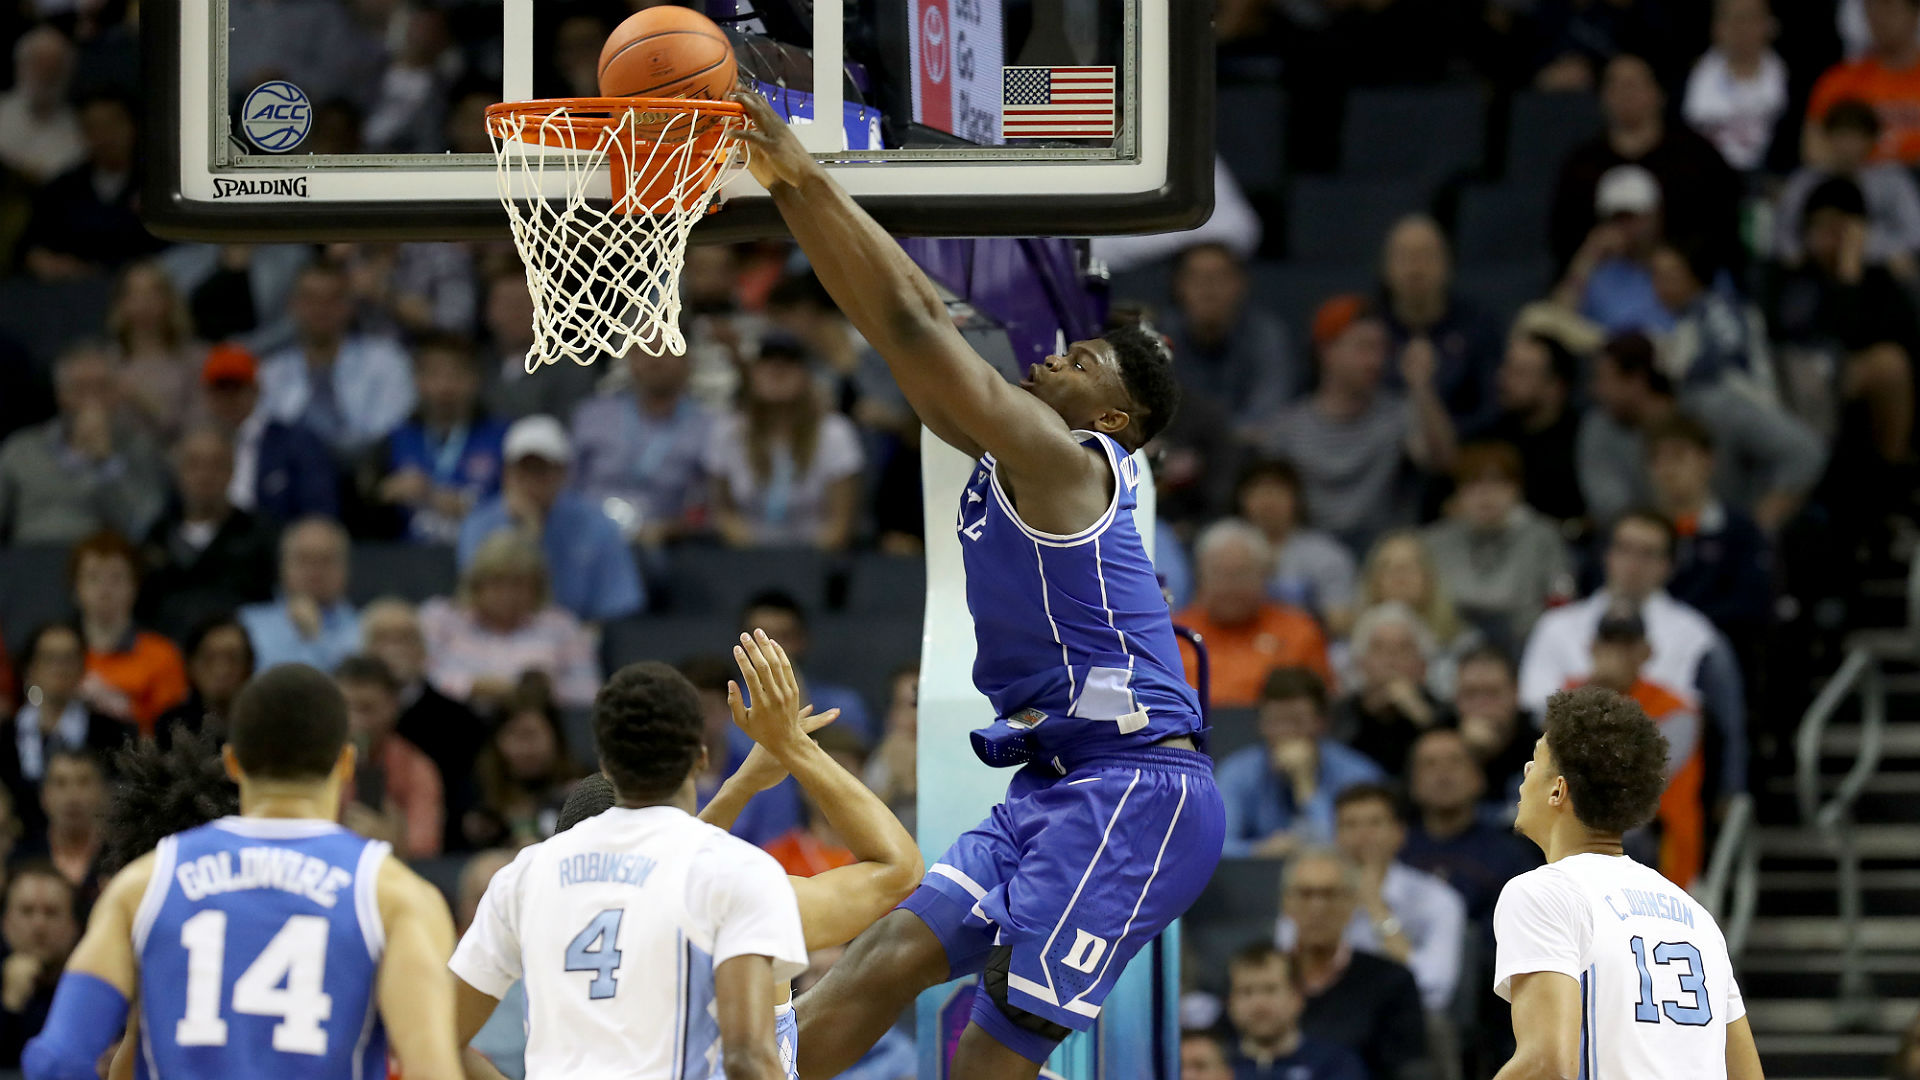 March Madness 2019 Zion Williamson Throws Down Multiple: 3 Takeaways From Duke's ACC Tournament Win Over UNC